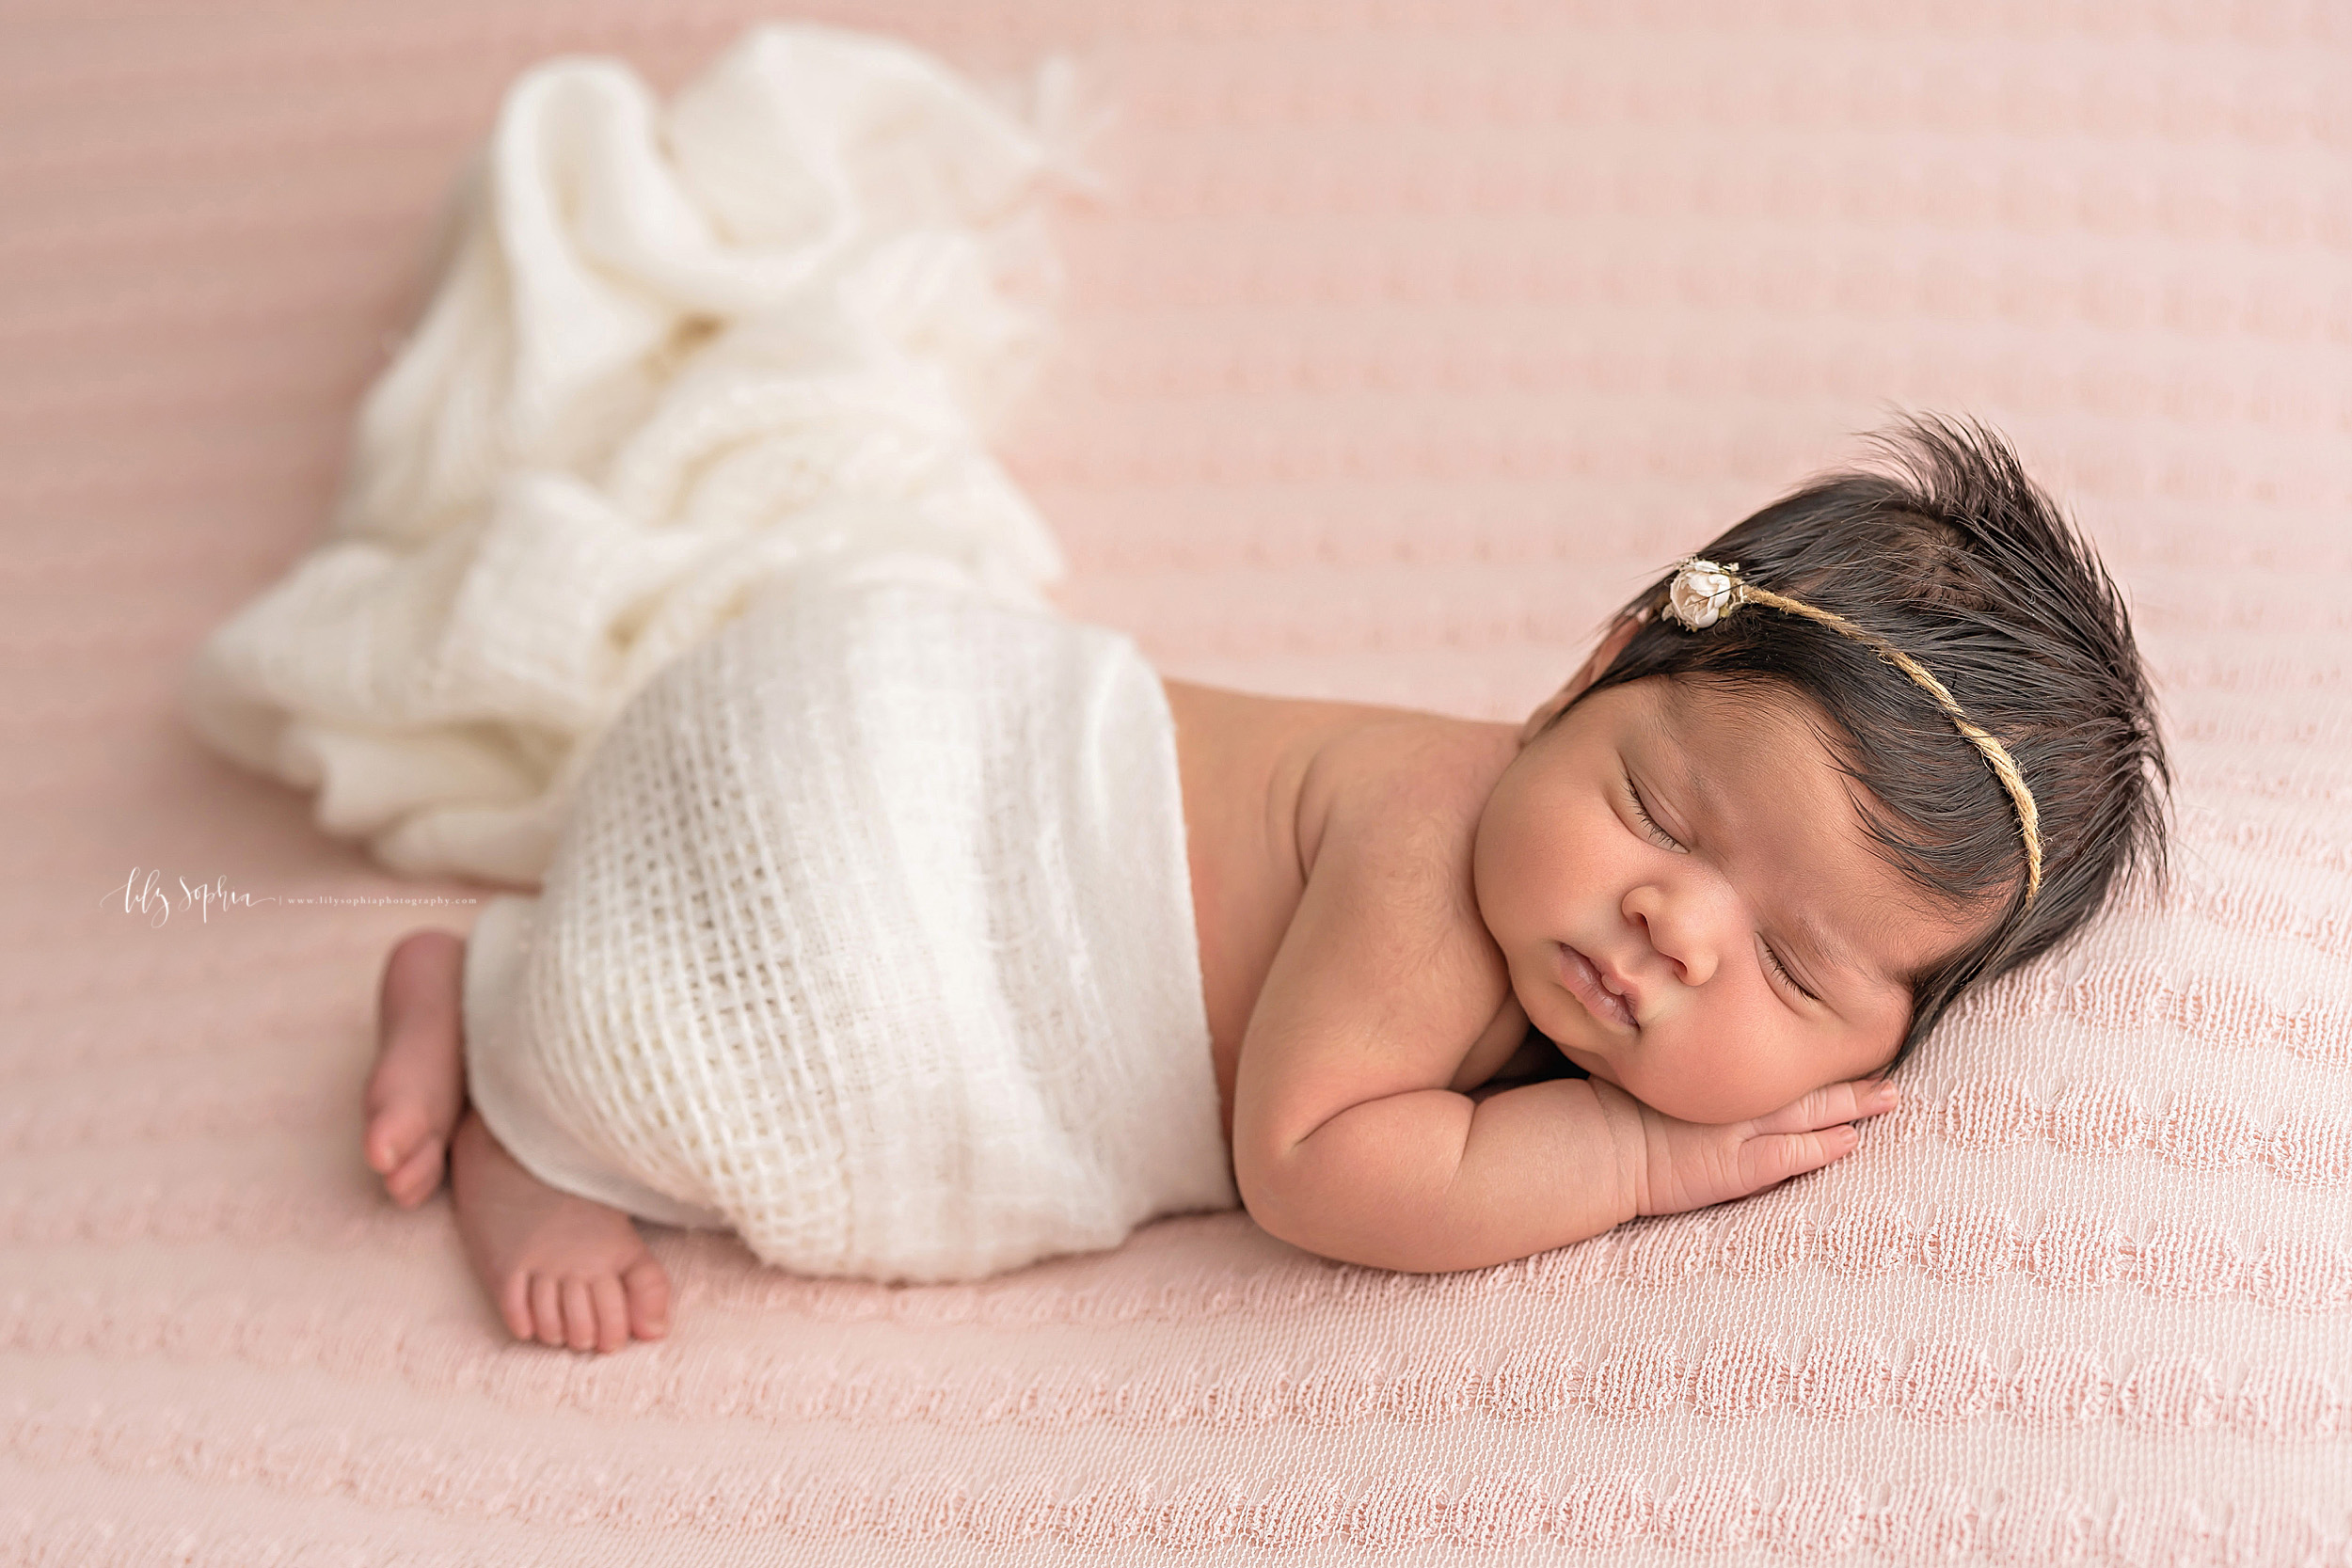 Photo of an infant Indian girl lying on a pink blanket with her feet sticking out of a soft white swaddle blanket that covers her bottom.  The infant girl is sleeping on her stomach with her hands under her face.  The infant girl has her face turned to the right and she has a headband with a single rose in her dark hair.  The photo is taken by Lily Sophia Photography.